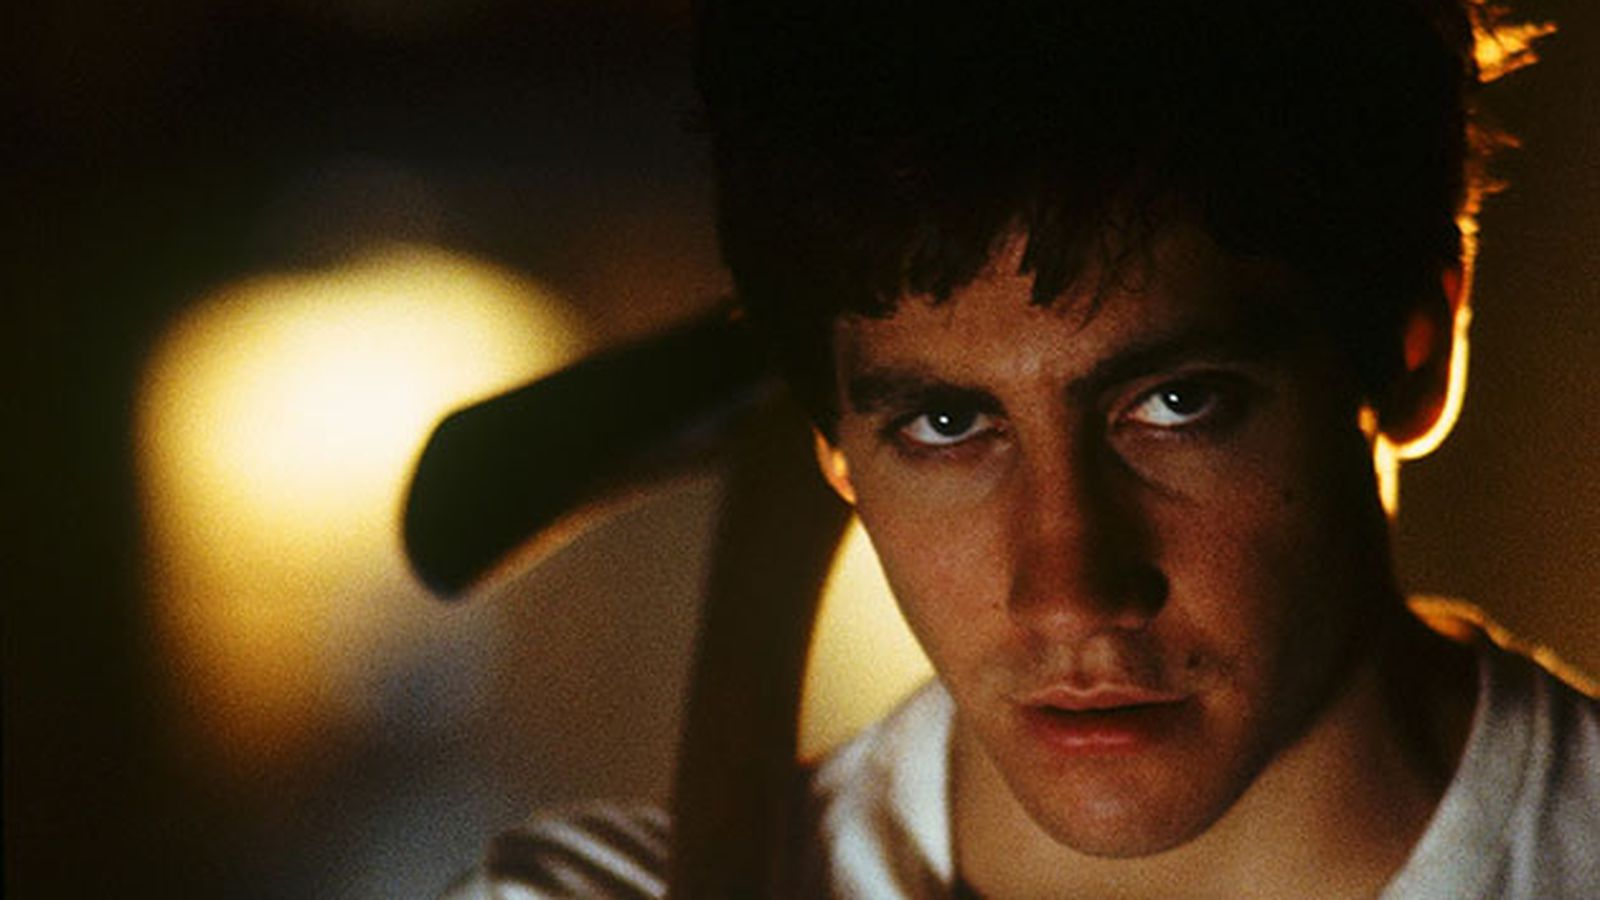 Rap songs about Donnie Darko ranked